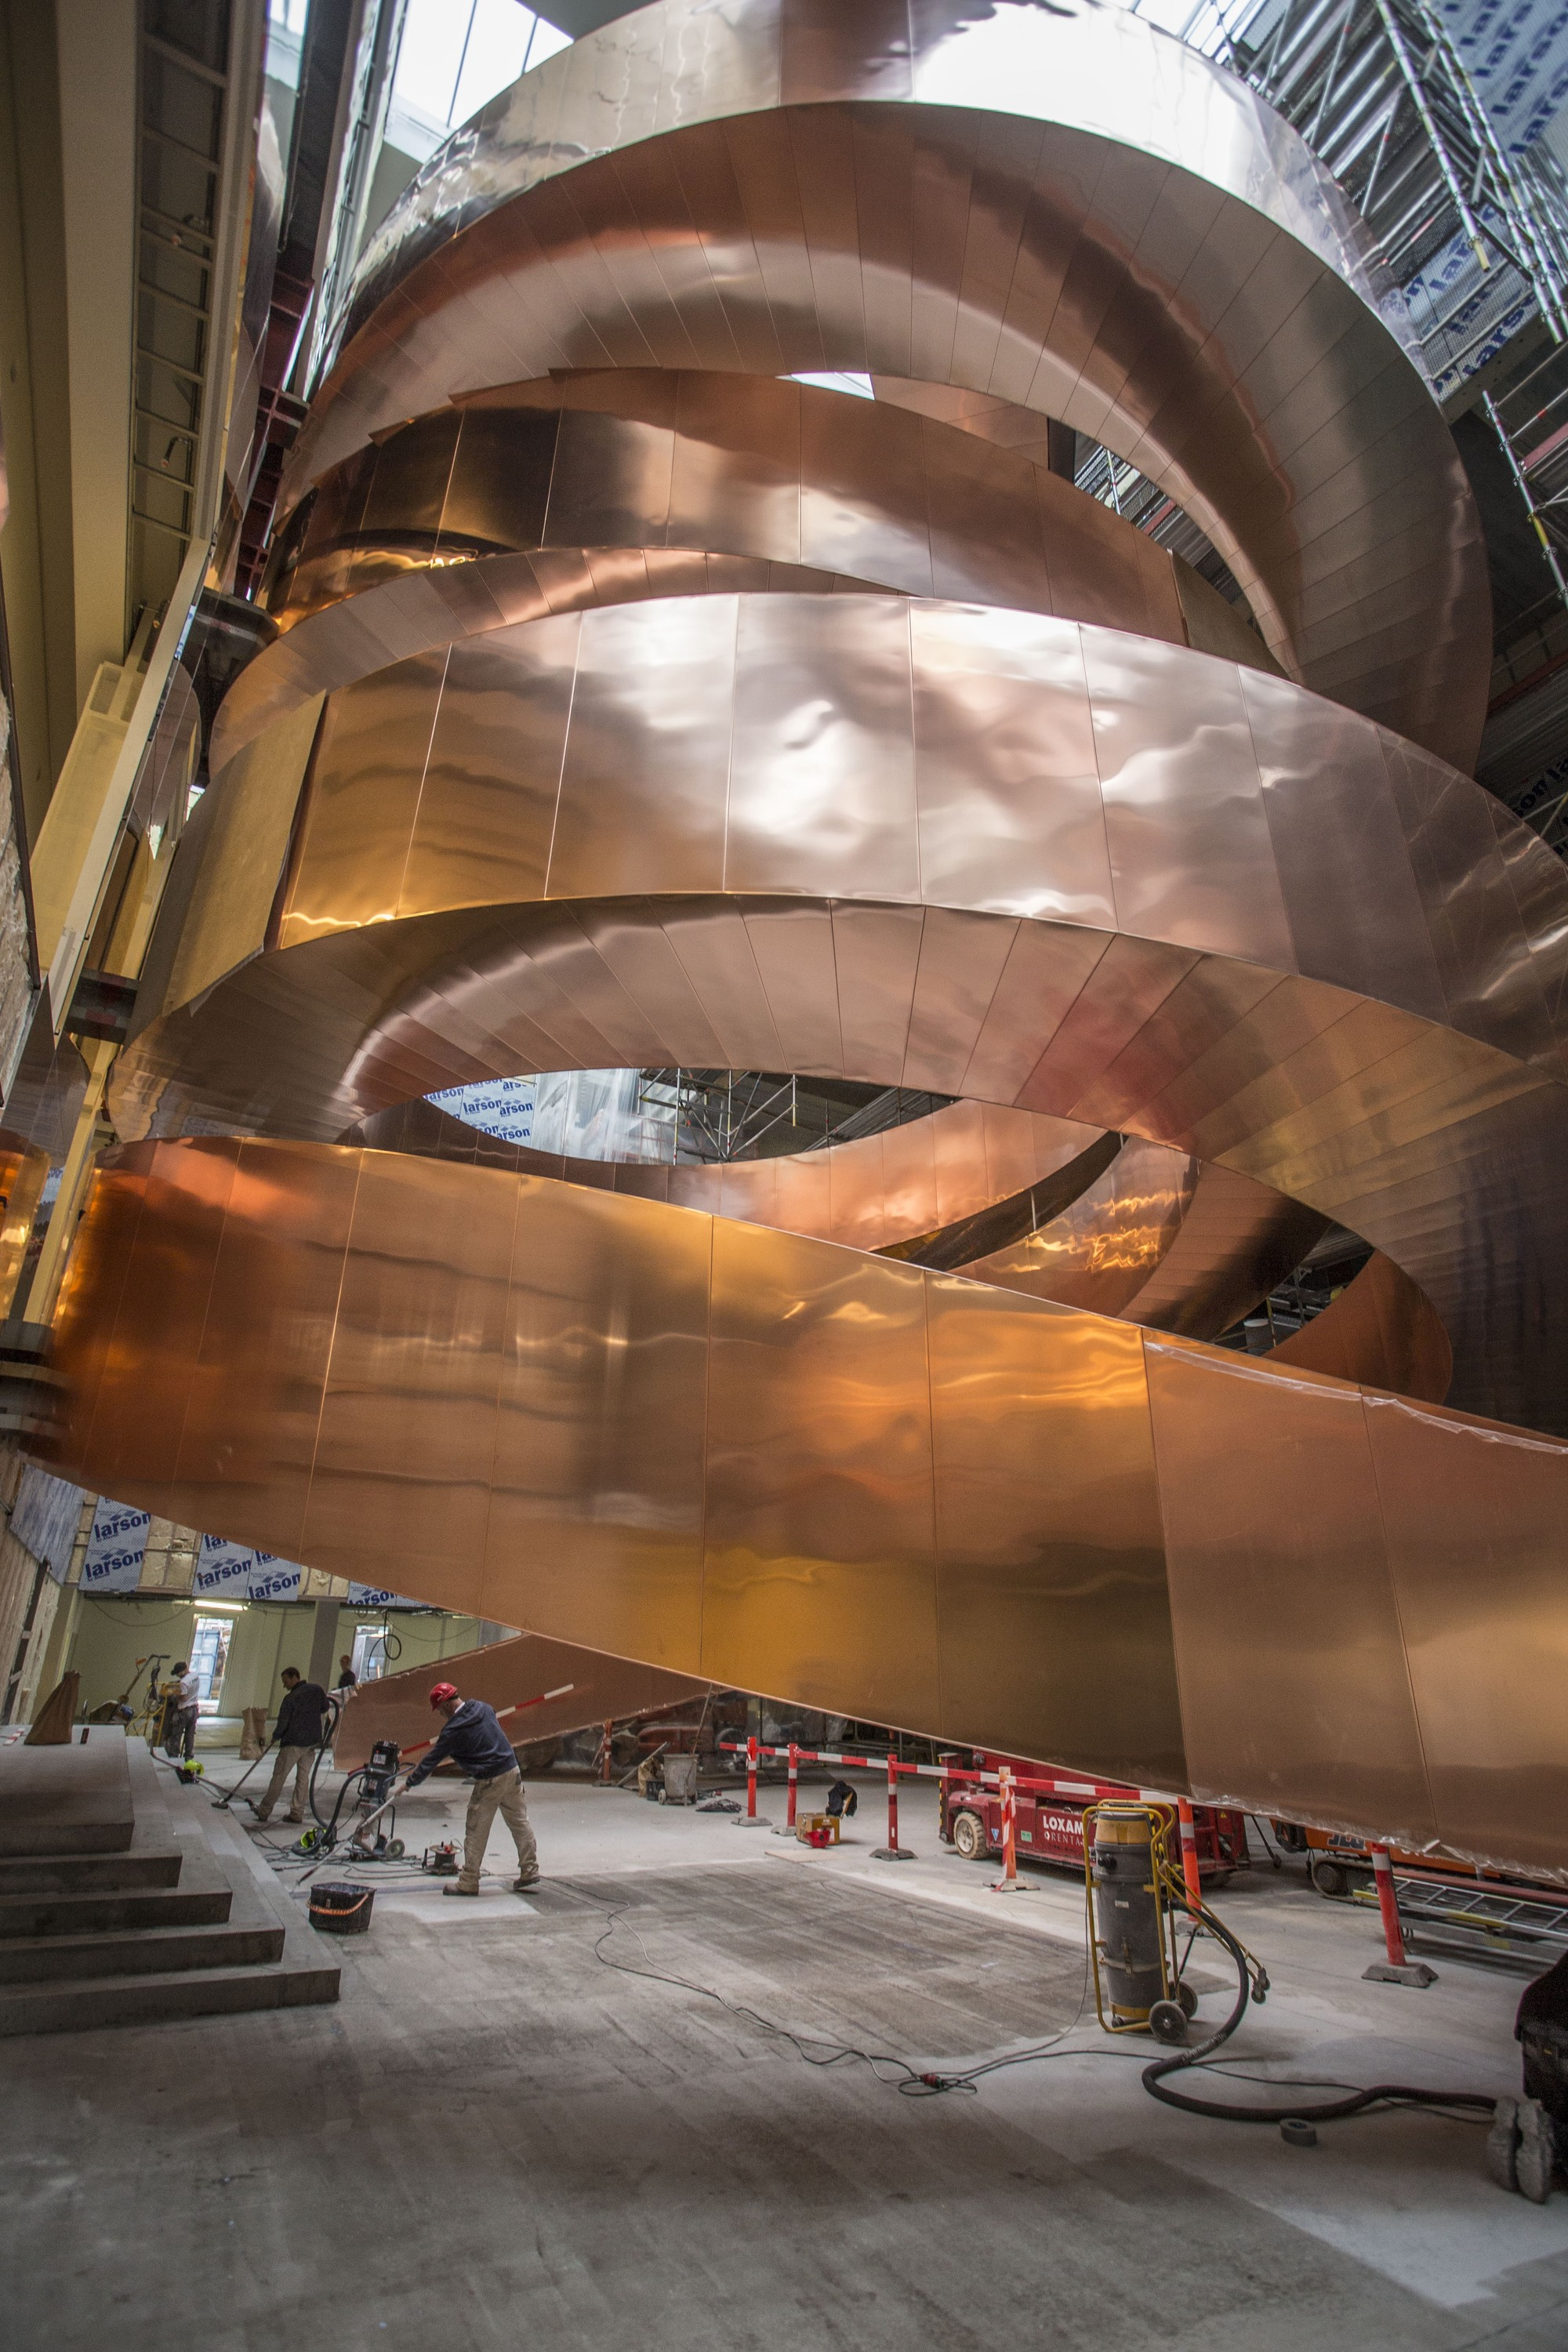 Cebra S Spiral Staircase Floats Weightlessly With 10 Tons